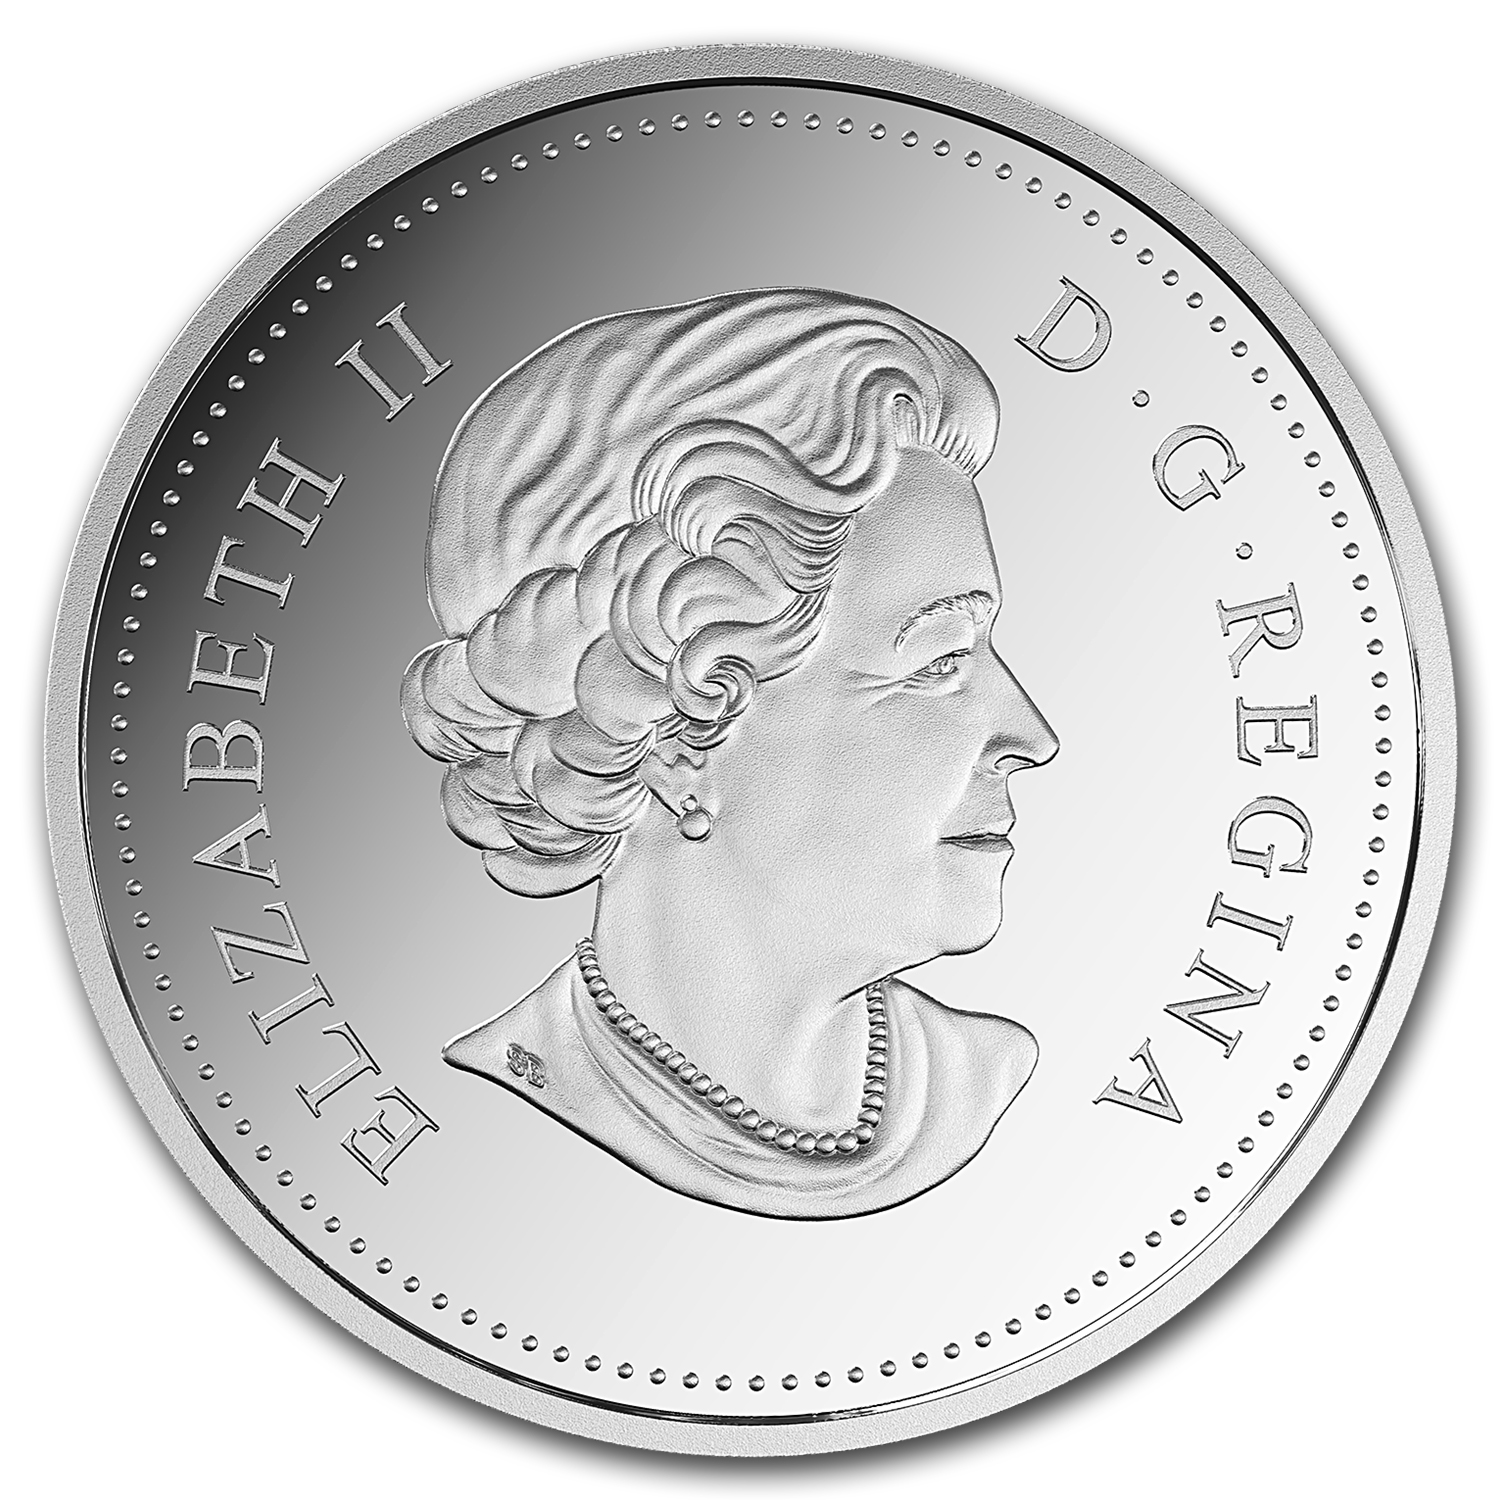 2016 Canada 1 oz Silver $20 A Celebration of Her Majesty's 90th